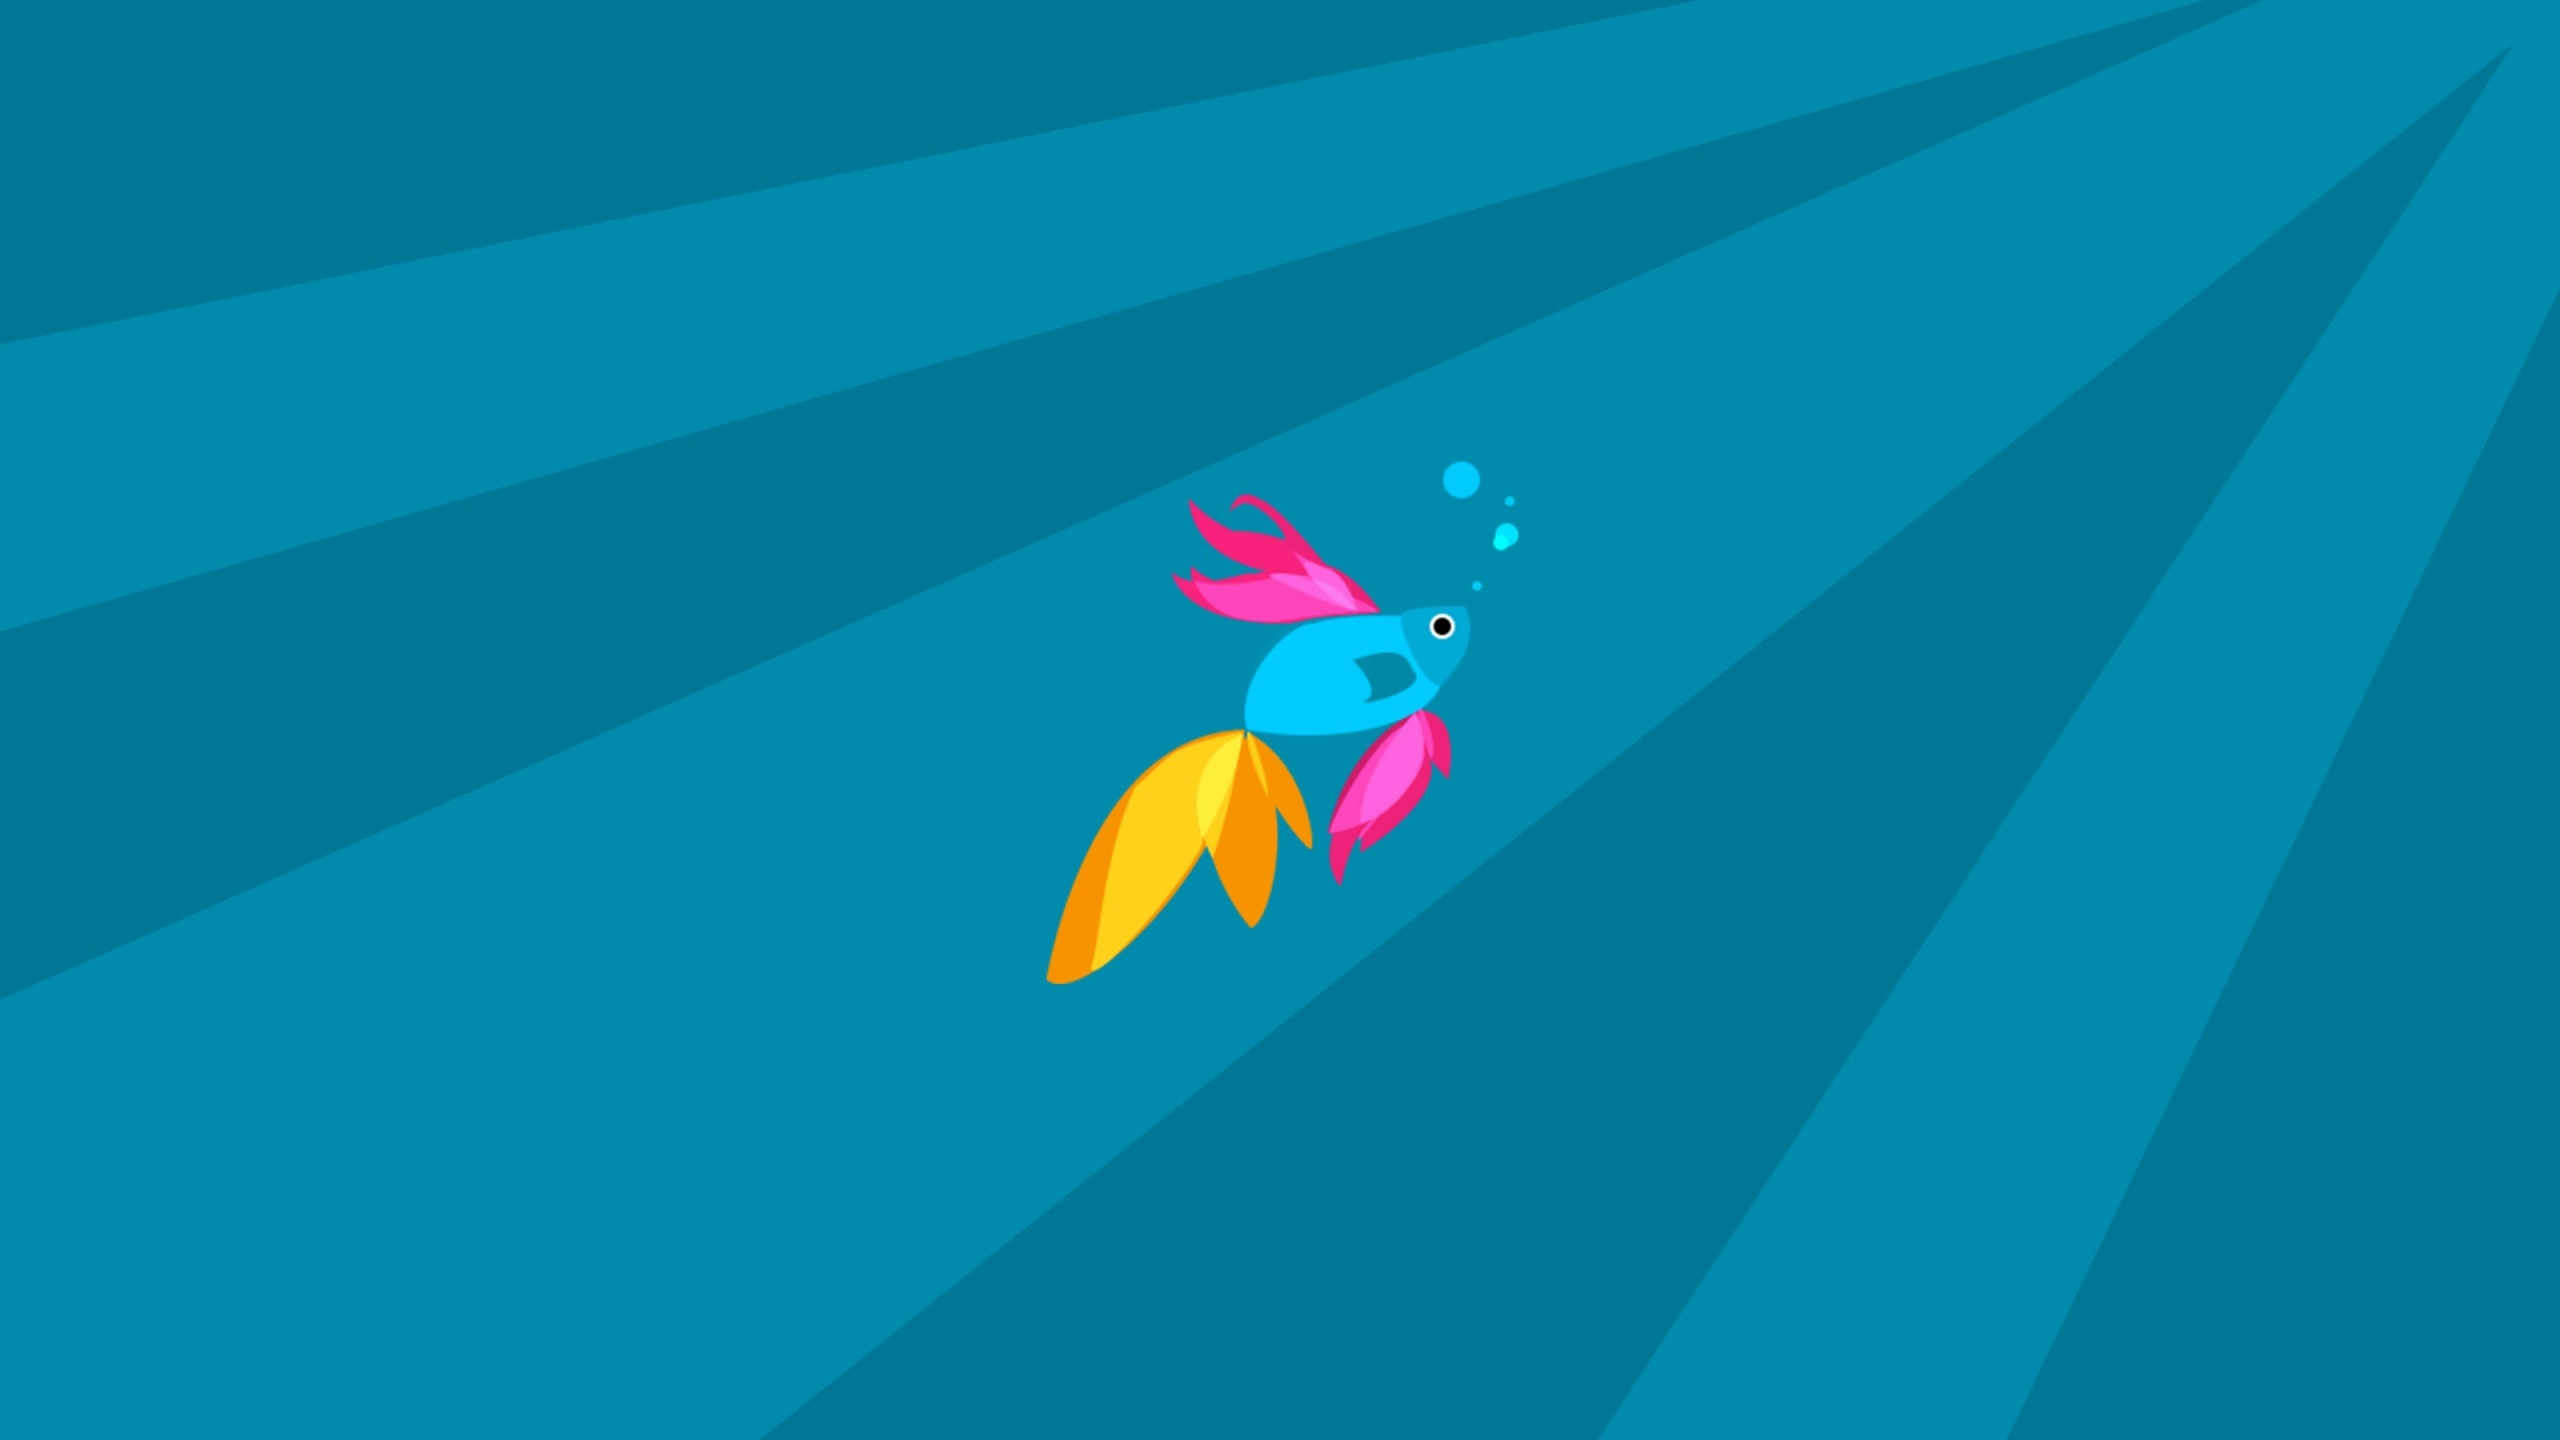 Beta Fish   HQ Wallpapers download 100 high quality wallpapers 2560x1440